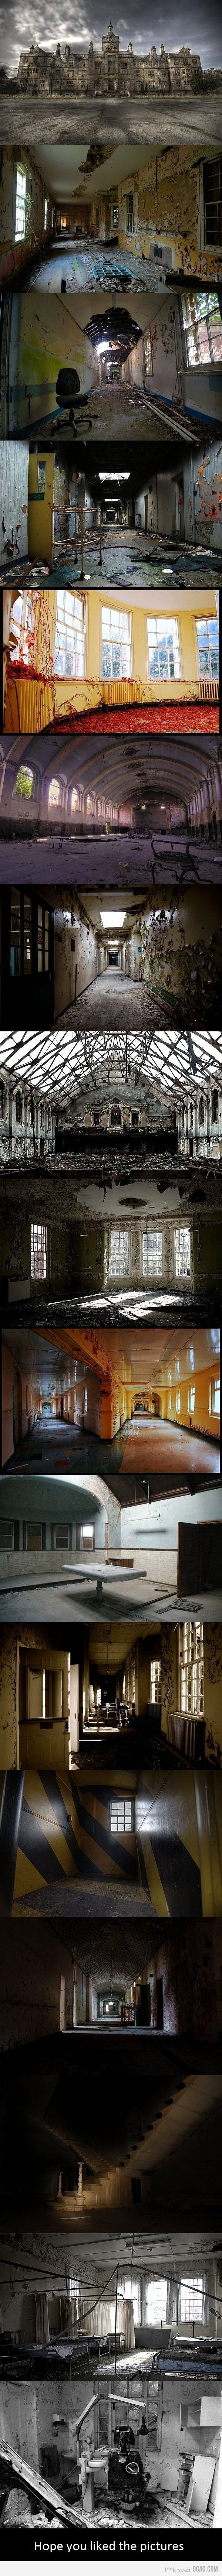 "top one is Denbigh Hospital. The forked corridor and the mortuary is High Royds. The yellow and black striped ""hazard room"" is an art installation at Deva Asylum. The forked staircase is St John's Hospital Lincoln. The dentist's room is Cane Hill."